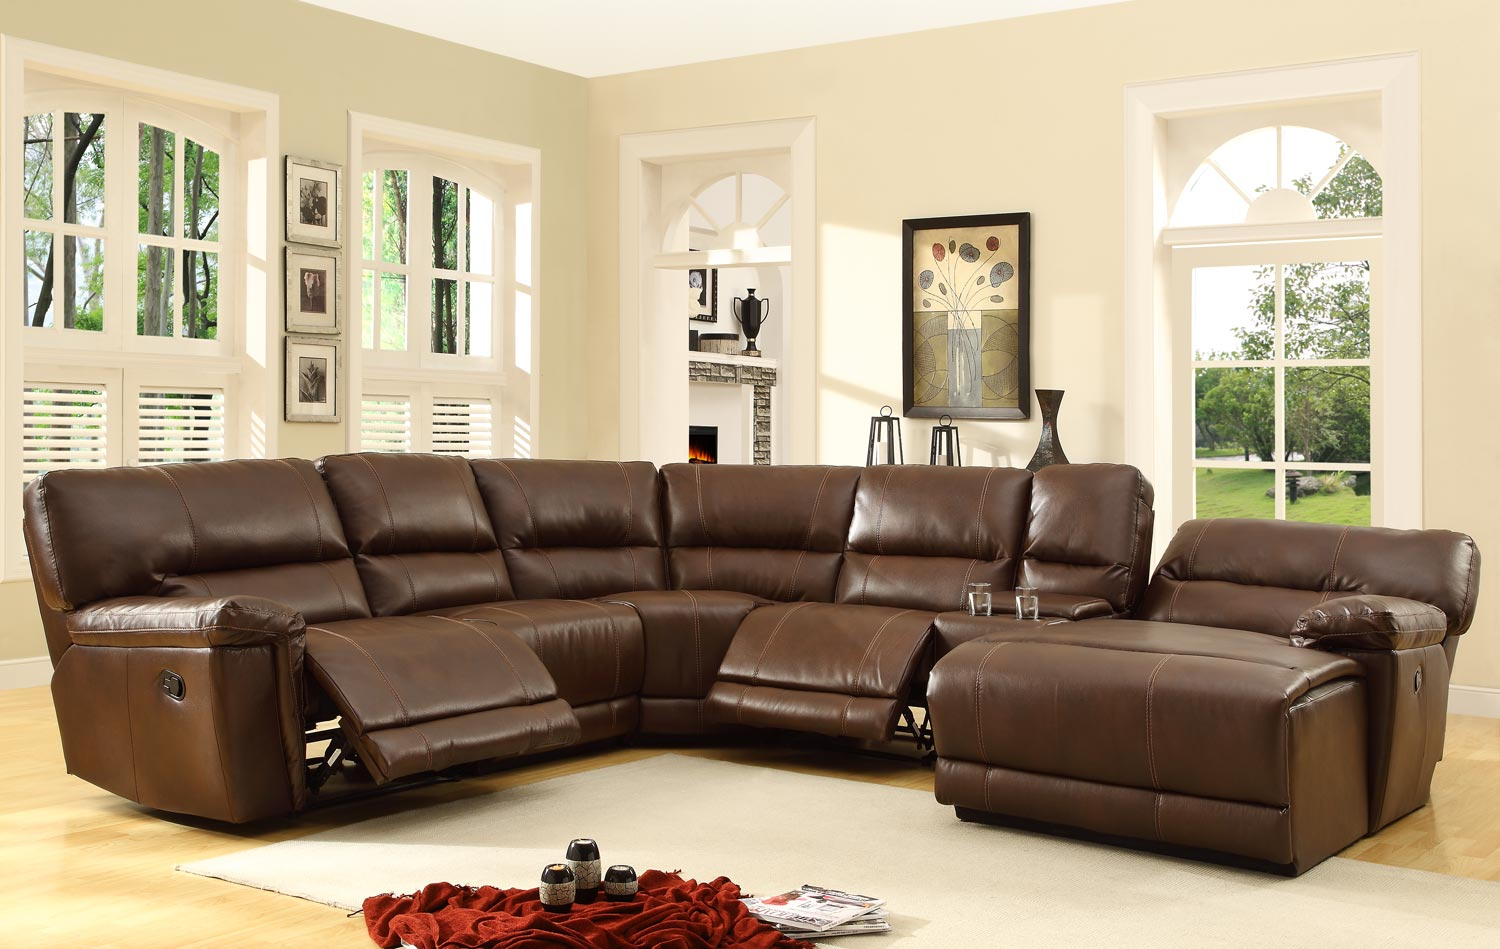 Homelegance Blythe Sectional Sofa Set Brown Bonded Leather